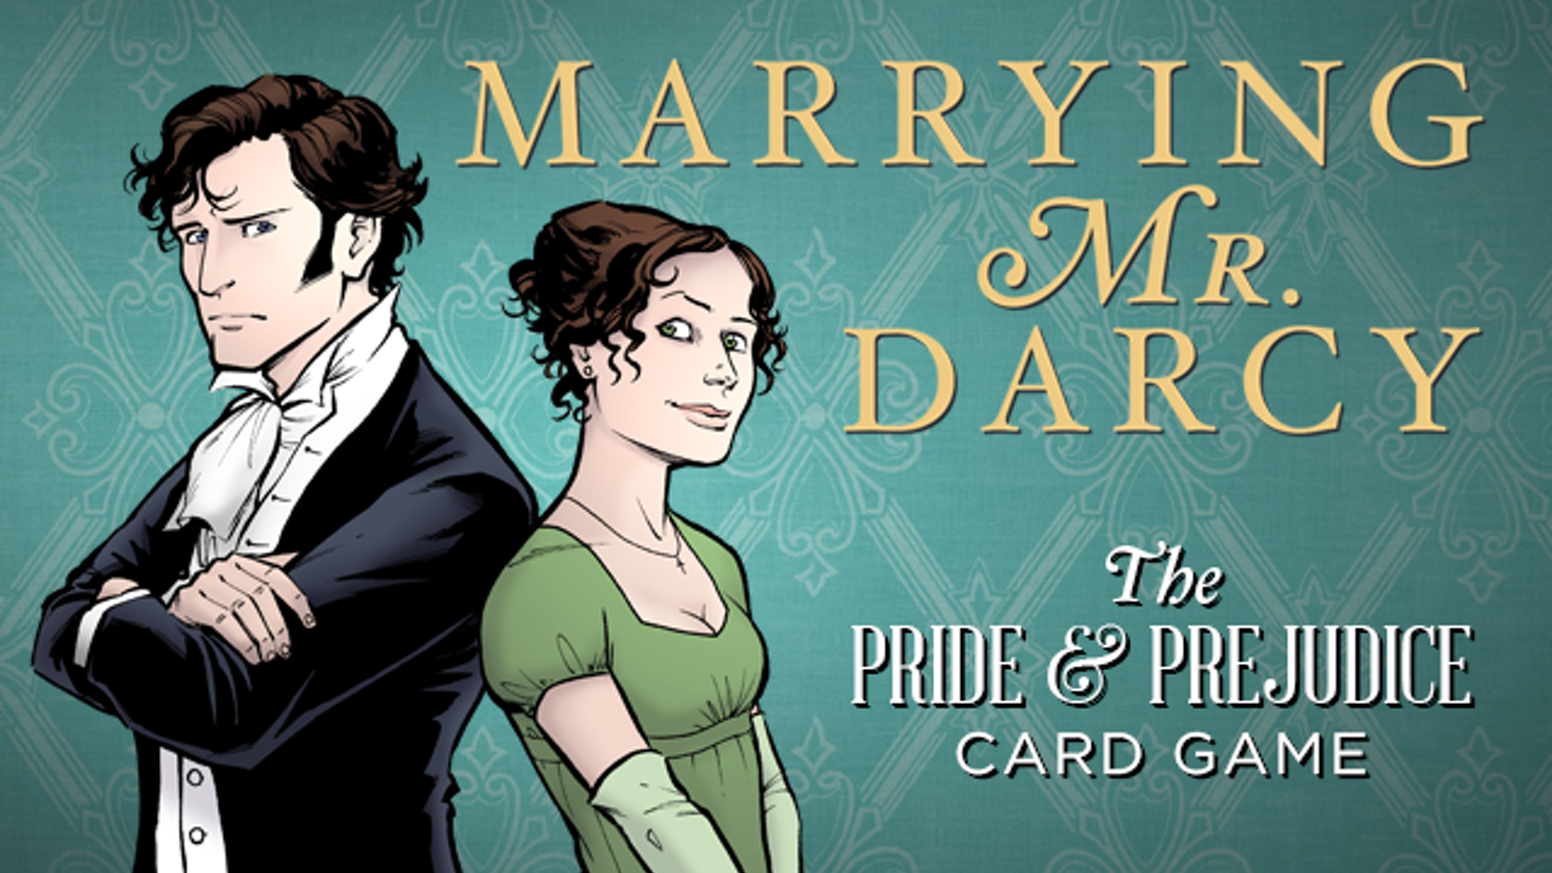 Marrying mr darcy the pride and prejudice card game by erika marrying mr darcy is a role playingstrategy card game for 2 altavistaventures Images